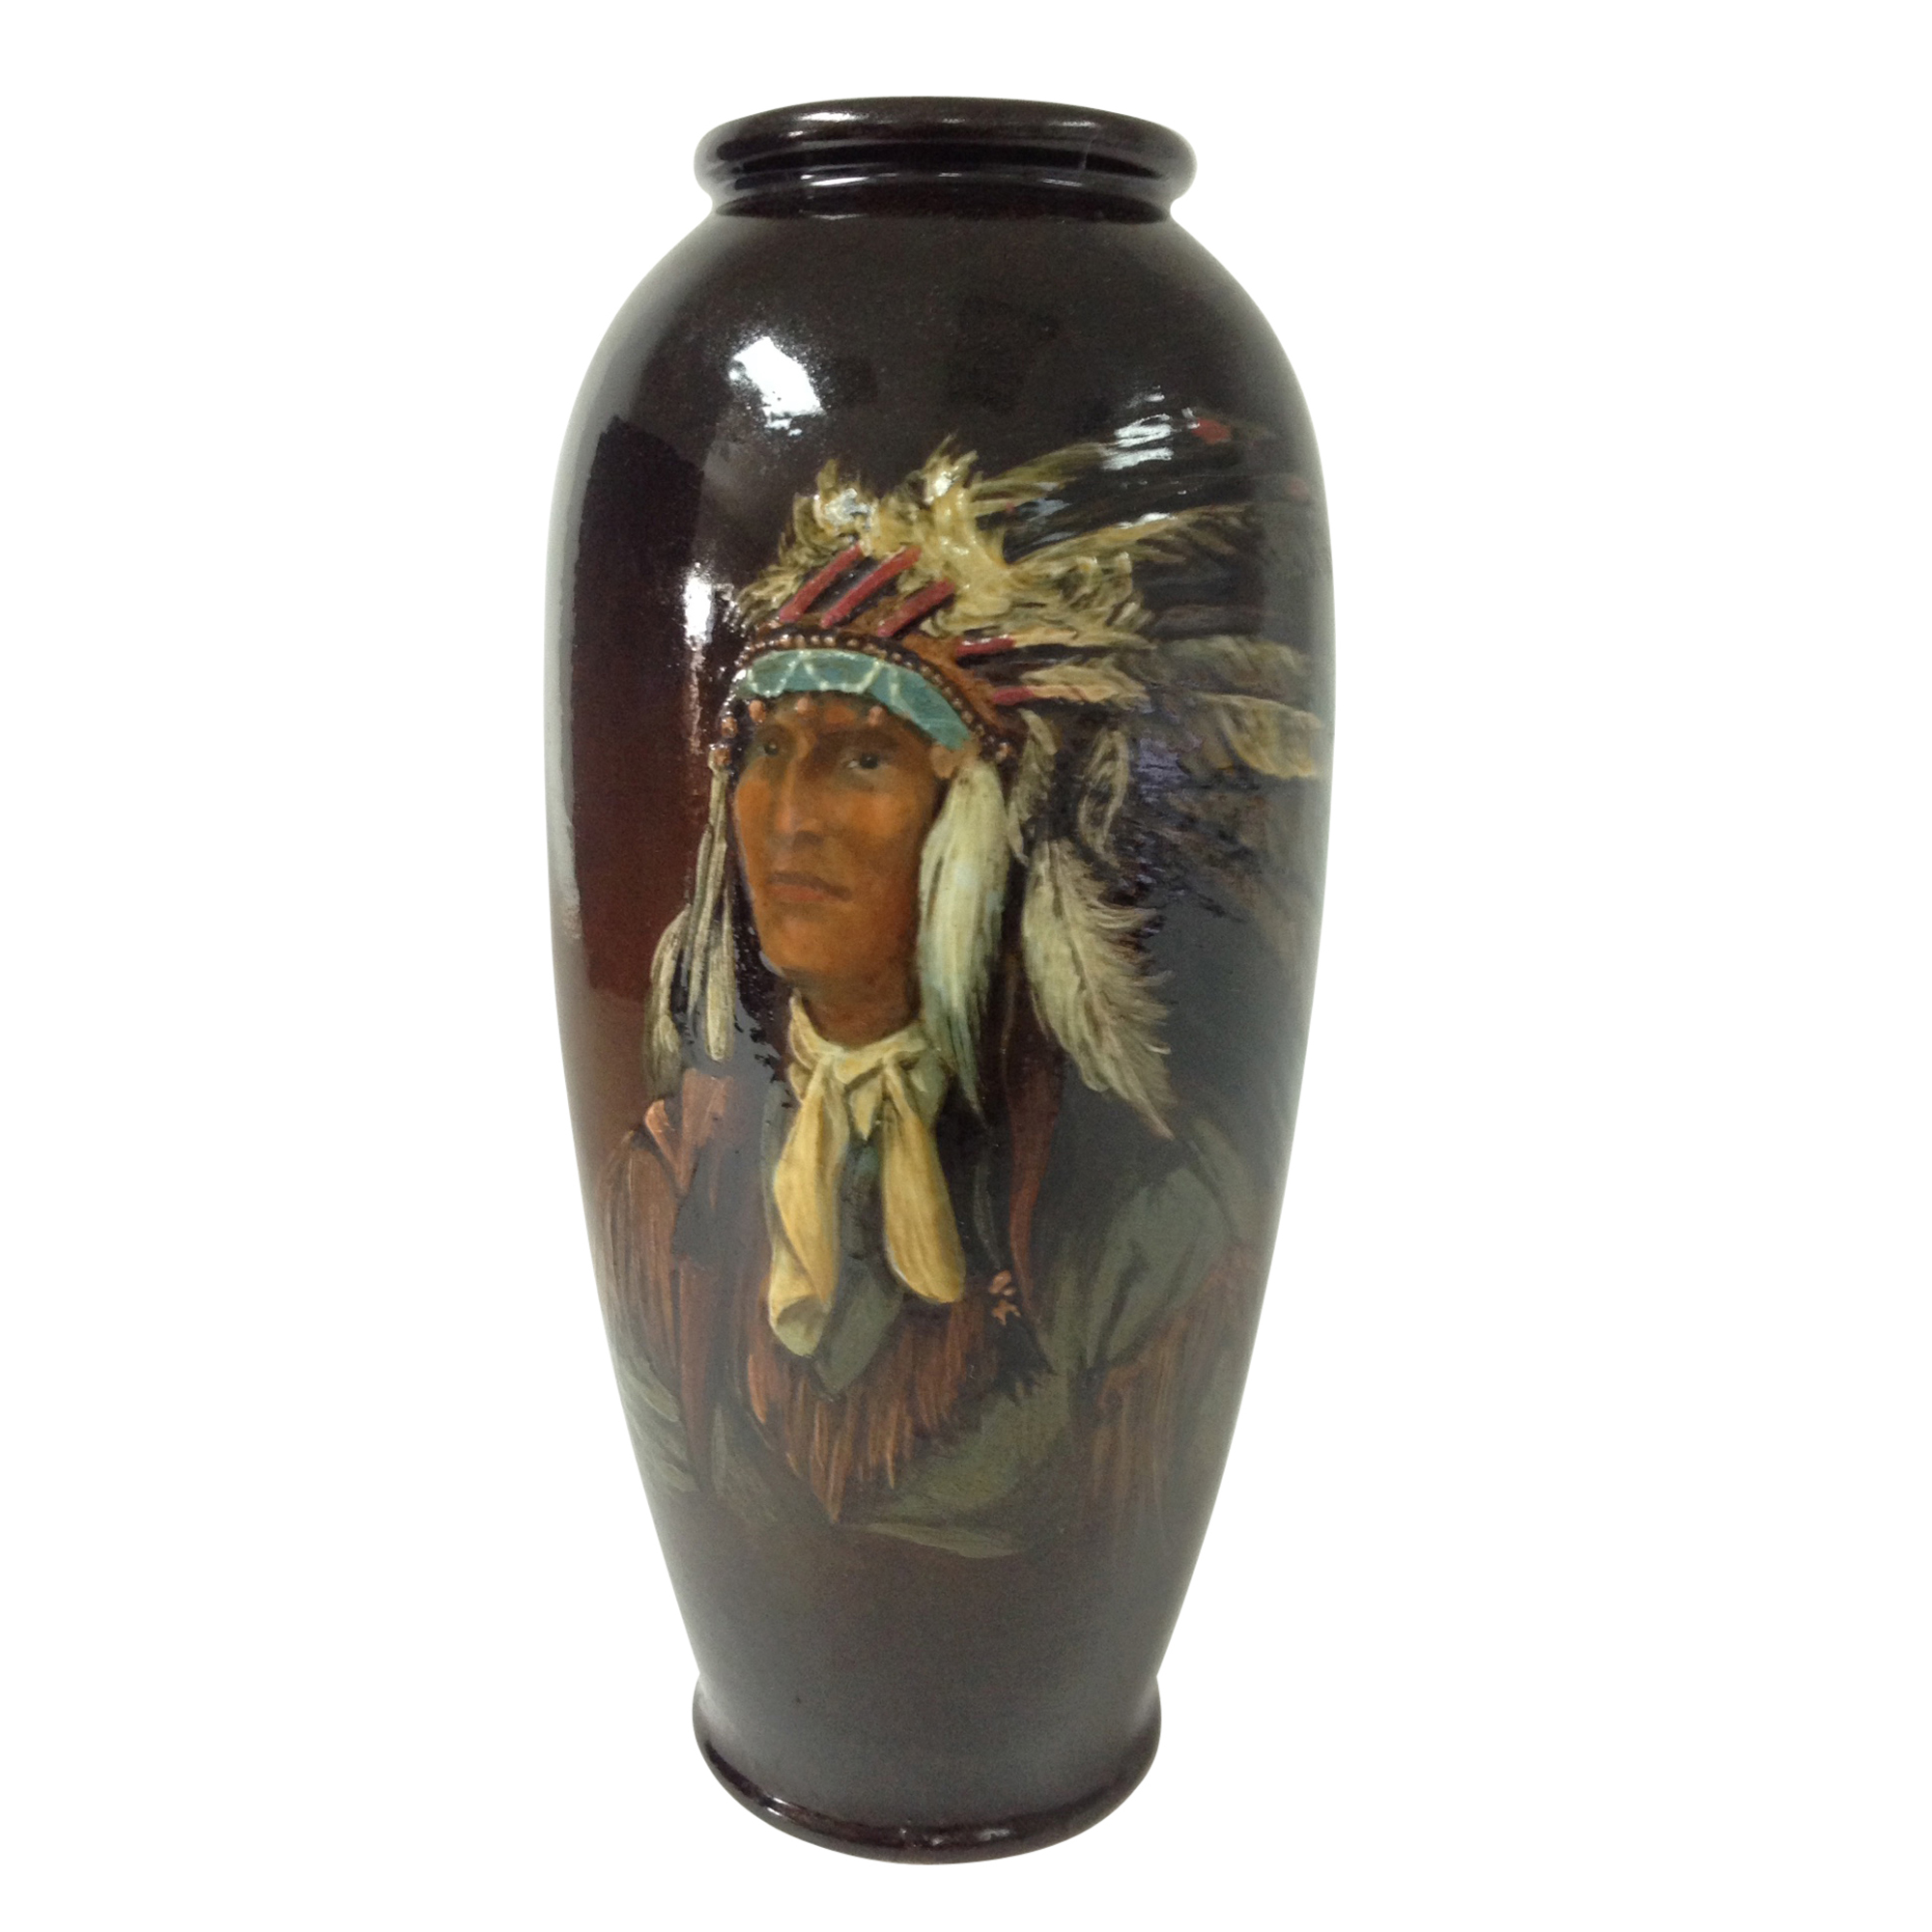 American Indian Hand Painted Vase by Tittensor - Royal Doulton